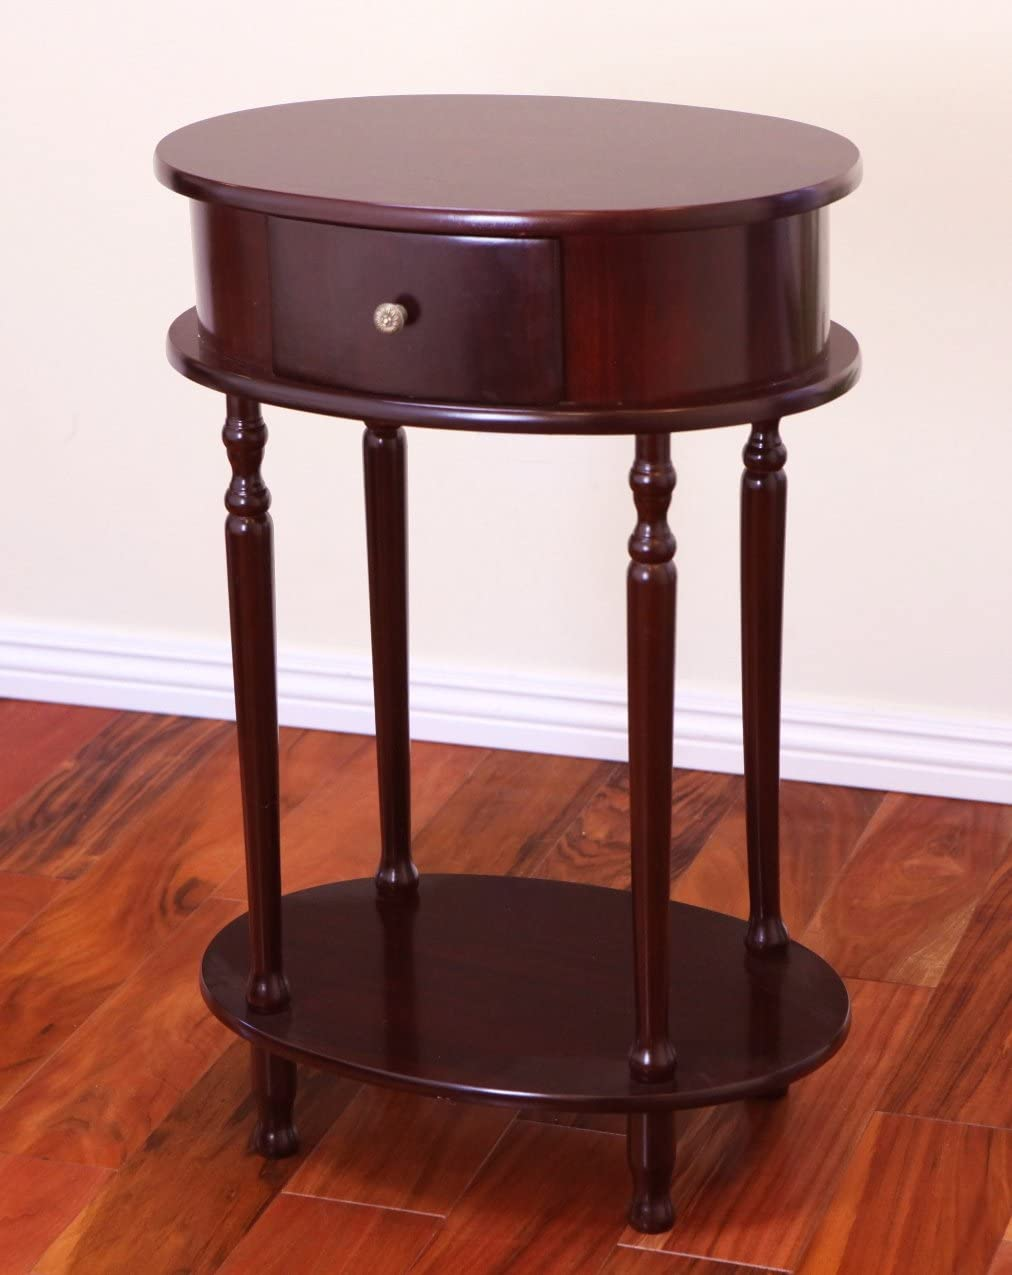 Frenchi Home Furnihisng End Table Side Table